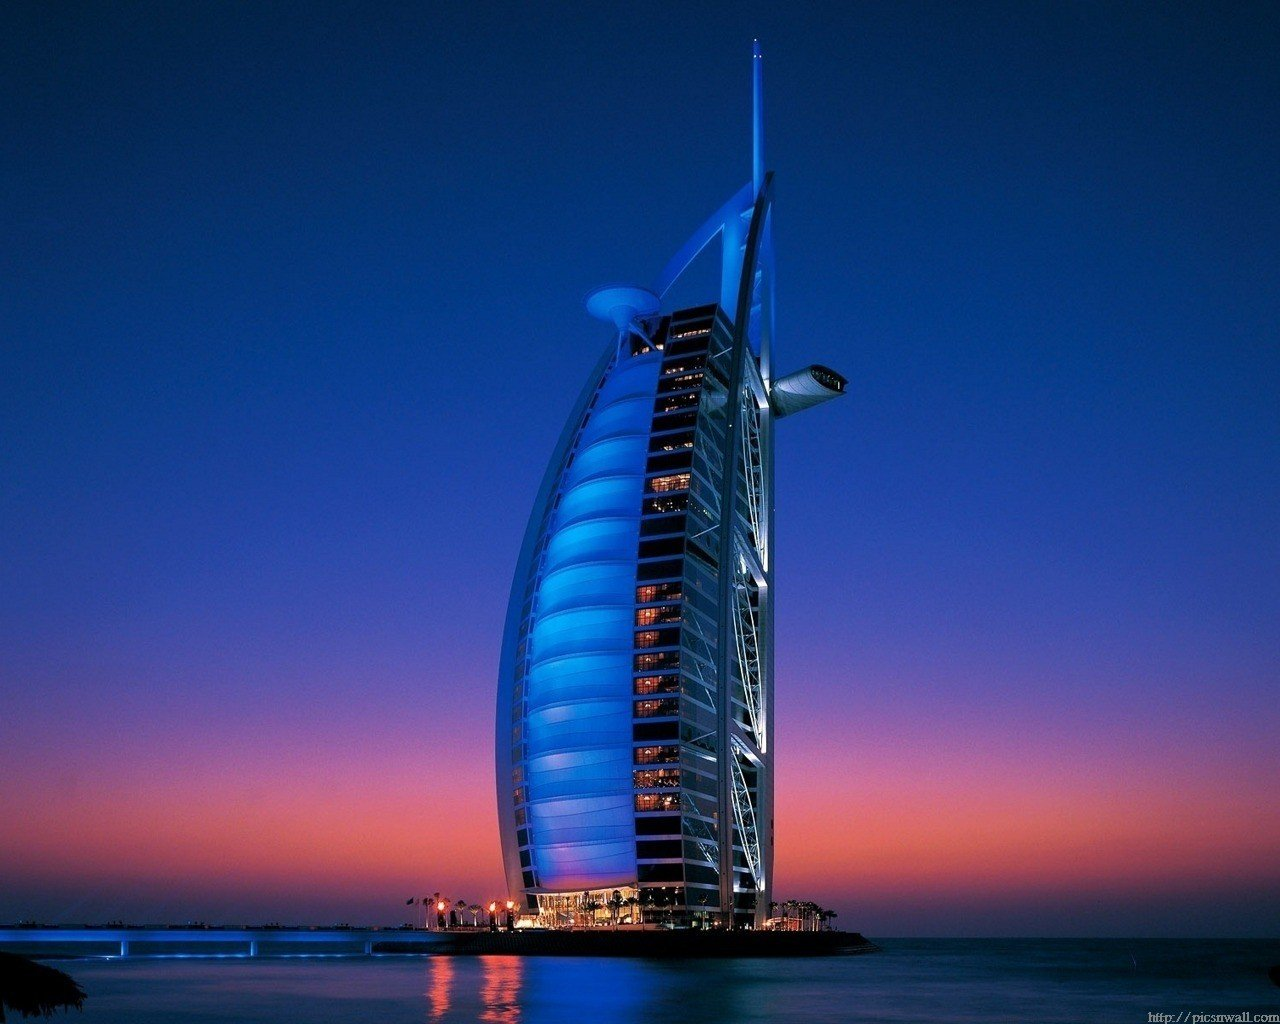 Best wallpapers in the world wallpapersafari for Best architectural designs in the world